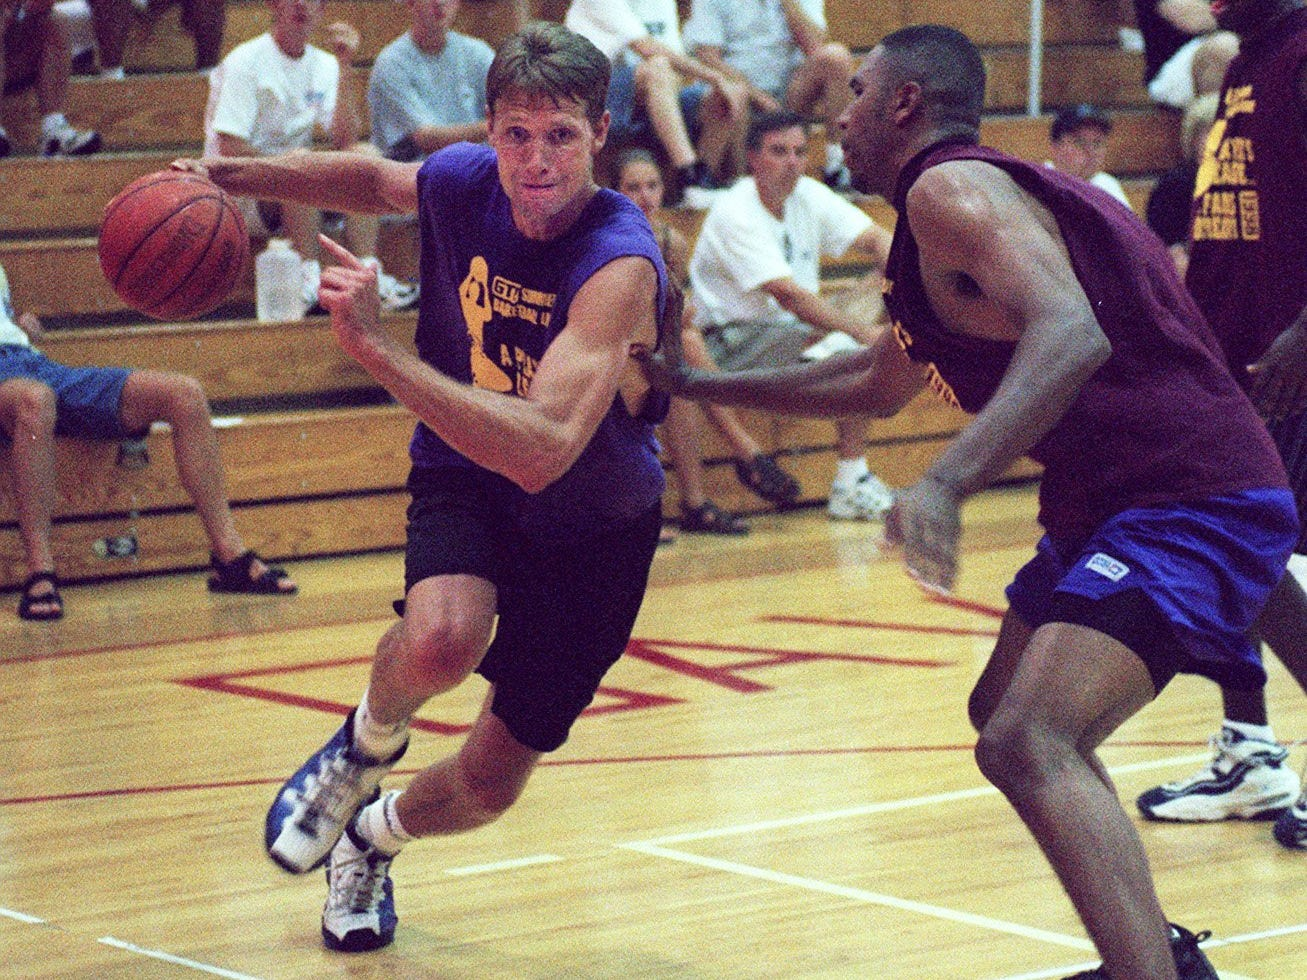 Text: 1998.0711.03.2 PURCELL SPORTS John Brannen playing on the the McCluskey drives the ball around Danon Flint during game action of the GTESummer League Tournament at Purcell Marian High School in East Walnut Hills. PHOTO BY Tony Jones / Cincinnati Enquirer.tj